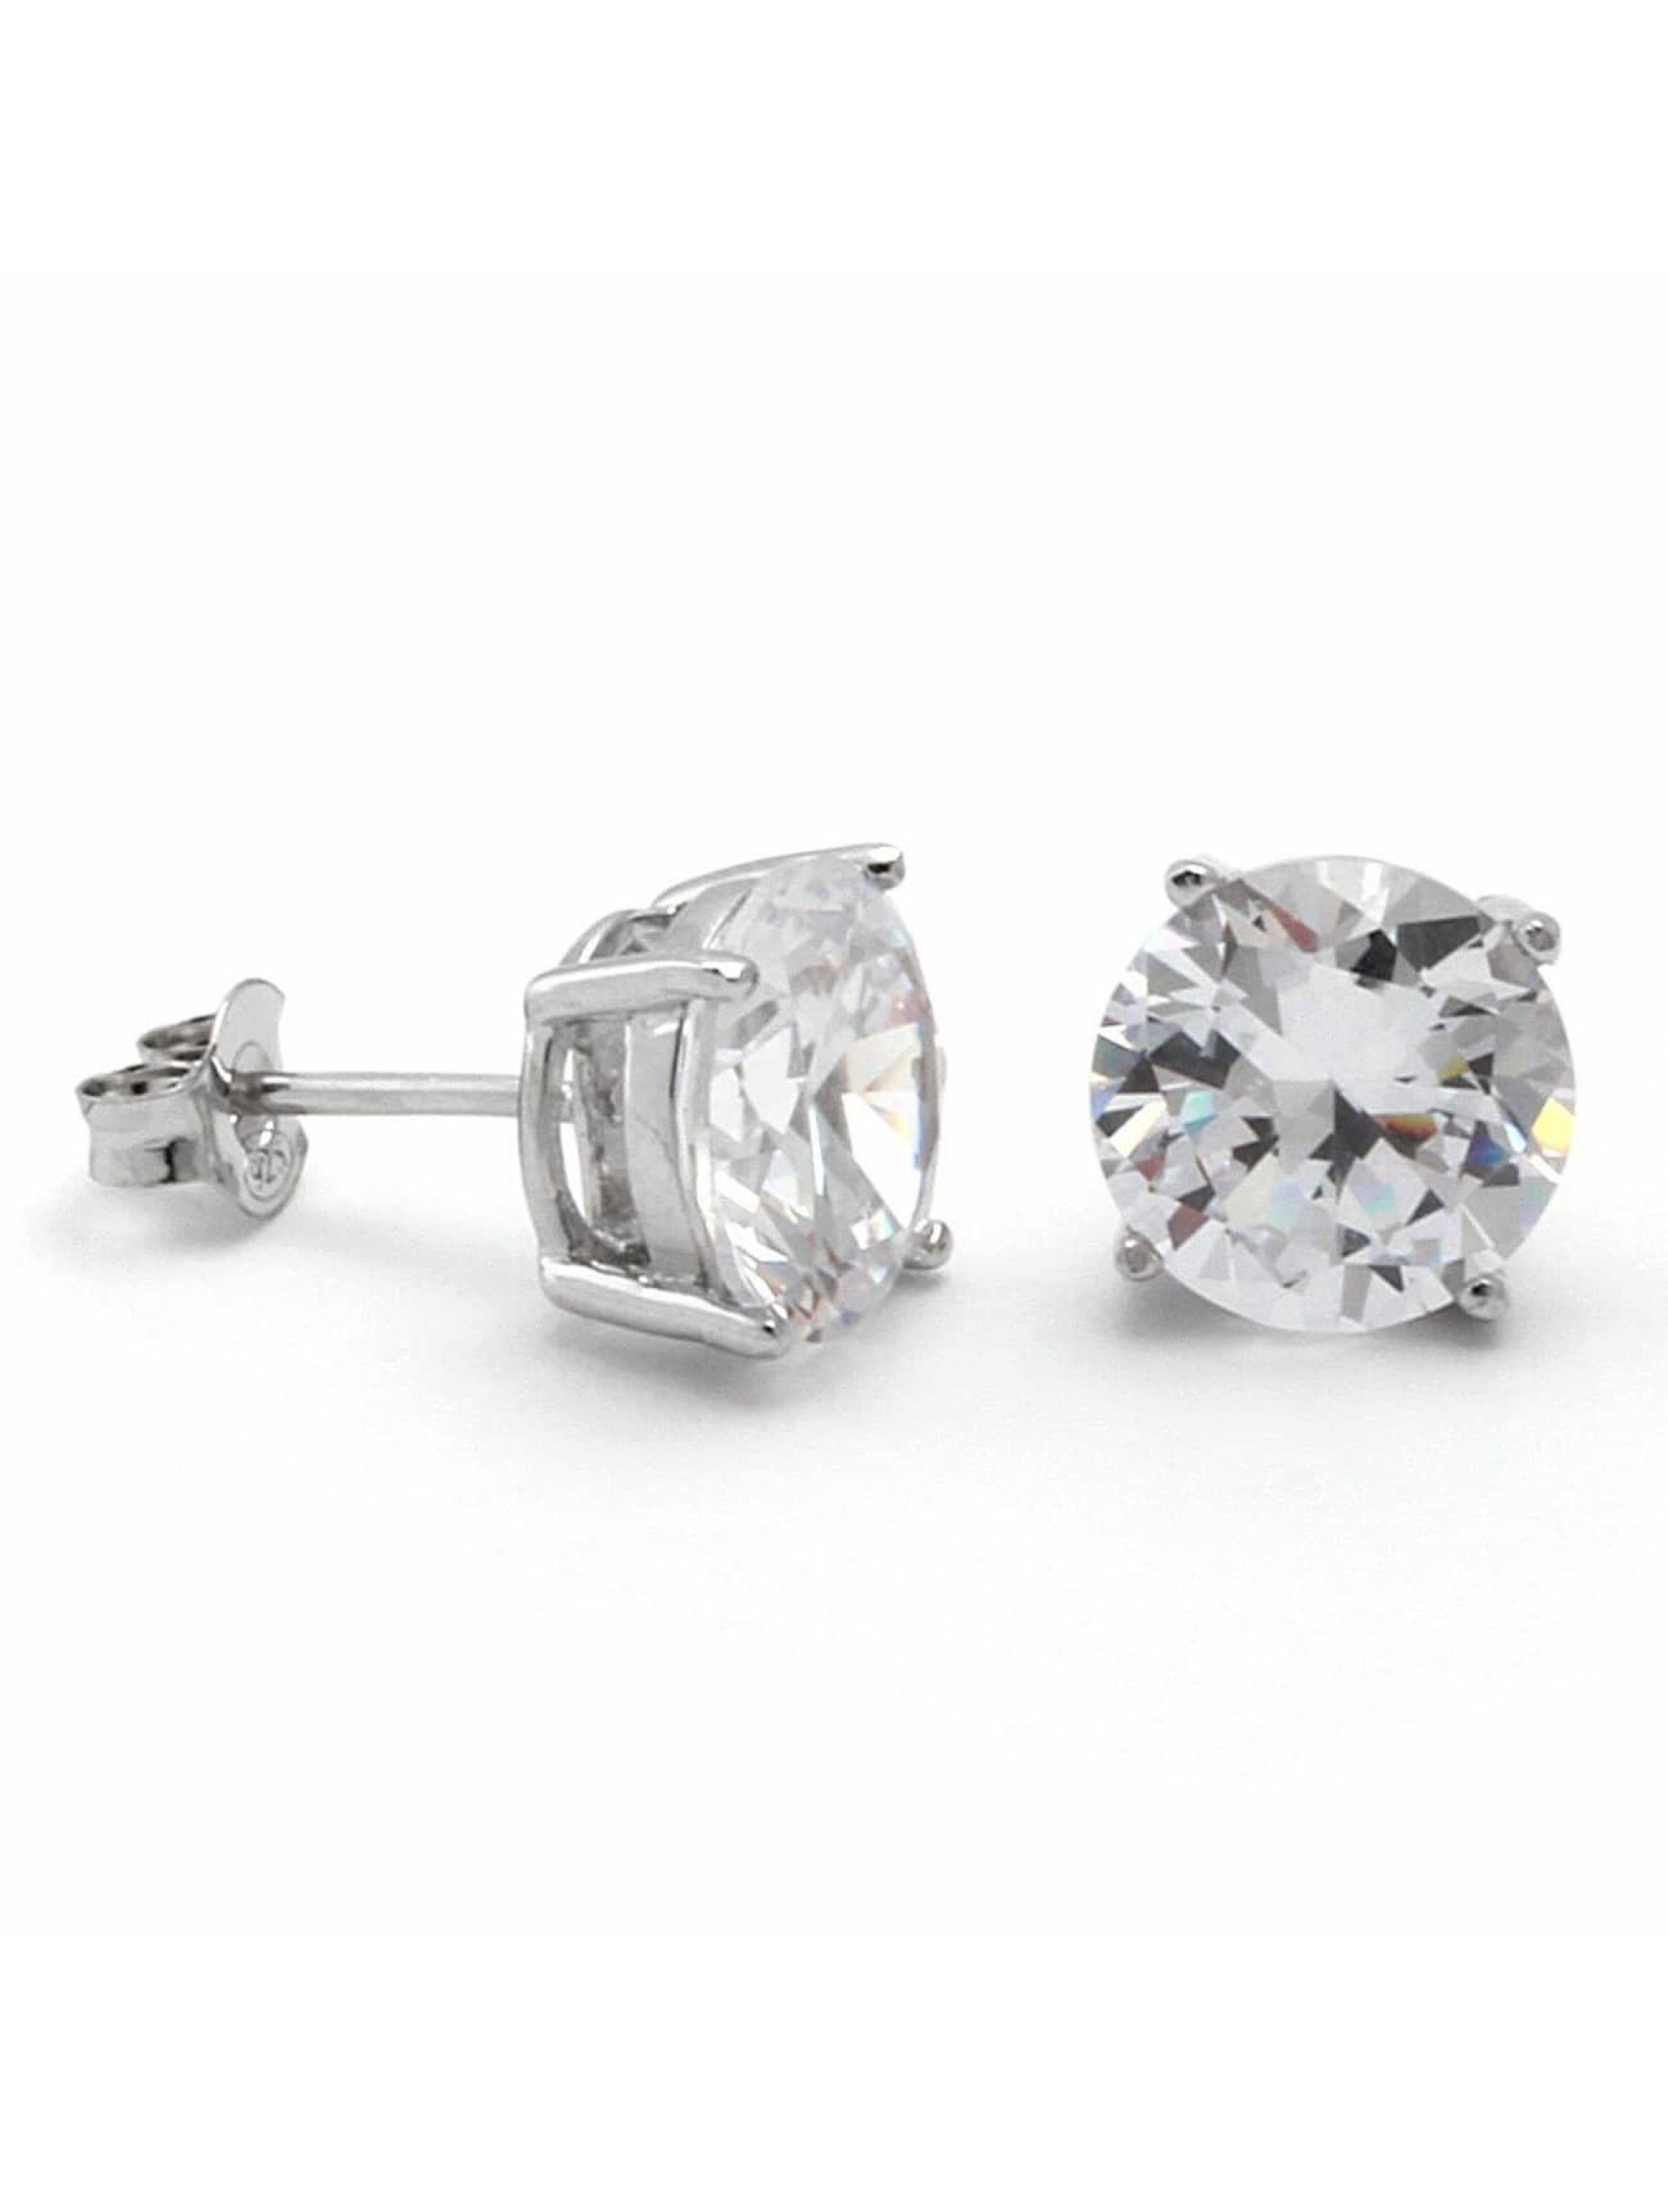 KING ICE Pendiente Rhodium_Plated 6mm 925 Sterling_Silver CZ plata